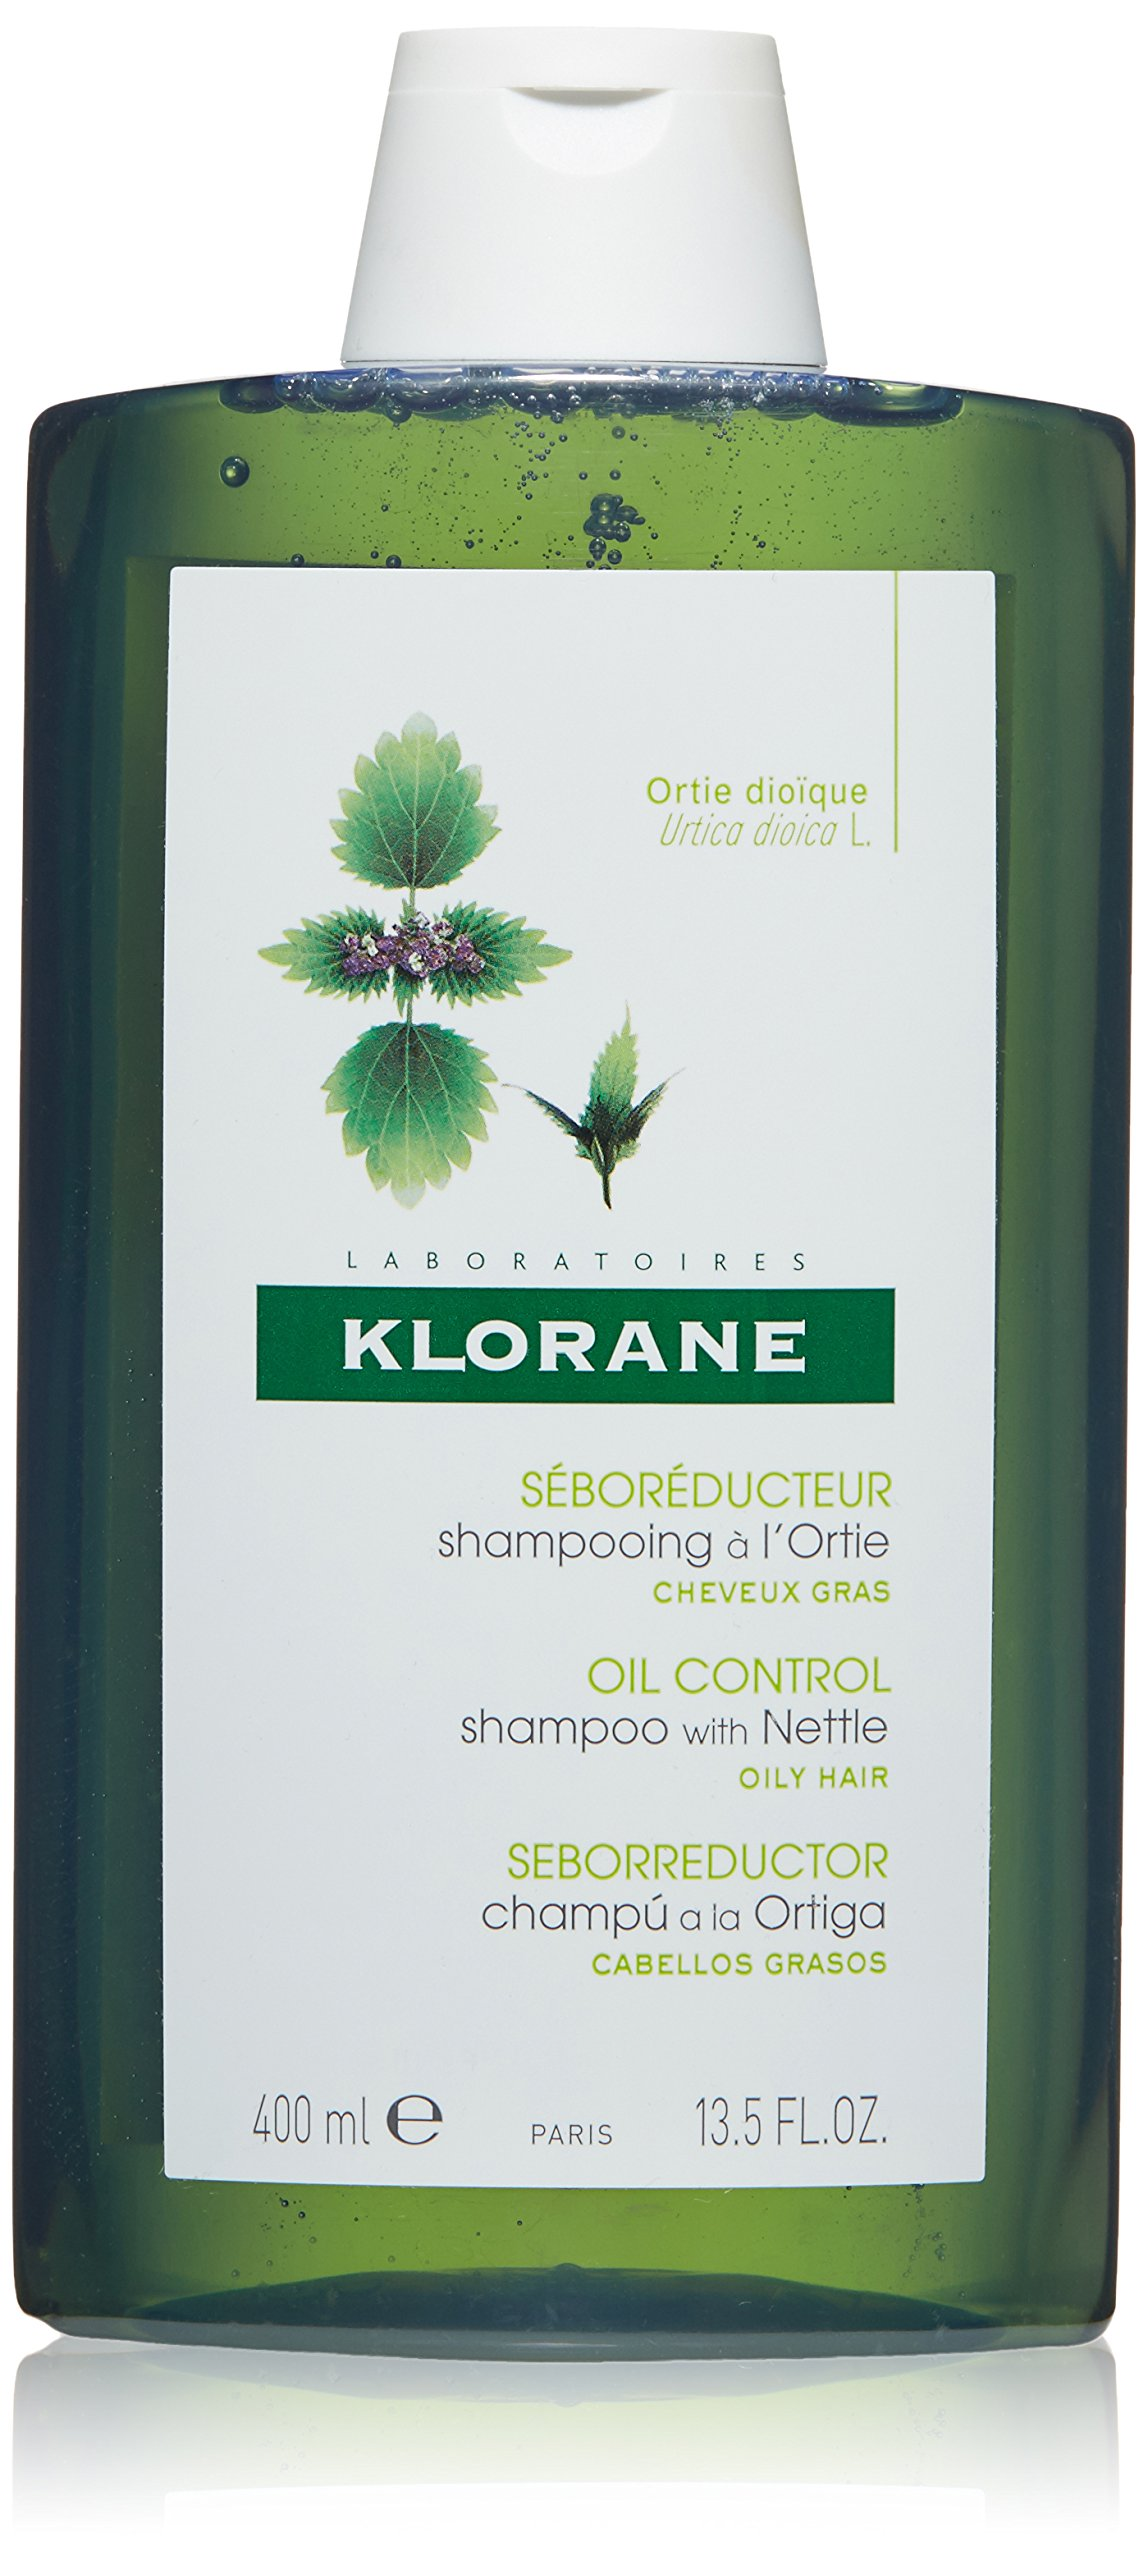 Klorane Shampoo with Nettle for Oily Hair and Scalp, Helps Regulate Oil Production, Paraben, Silicone, SLS Free, 13.5 oz. by Klorane